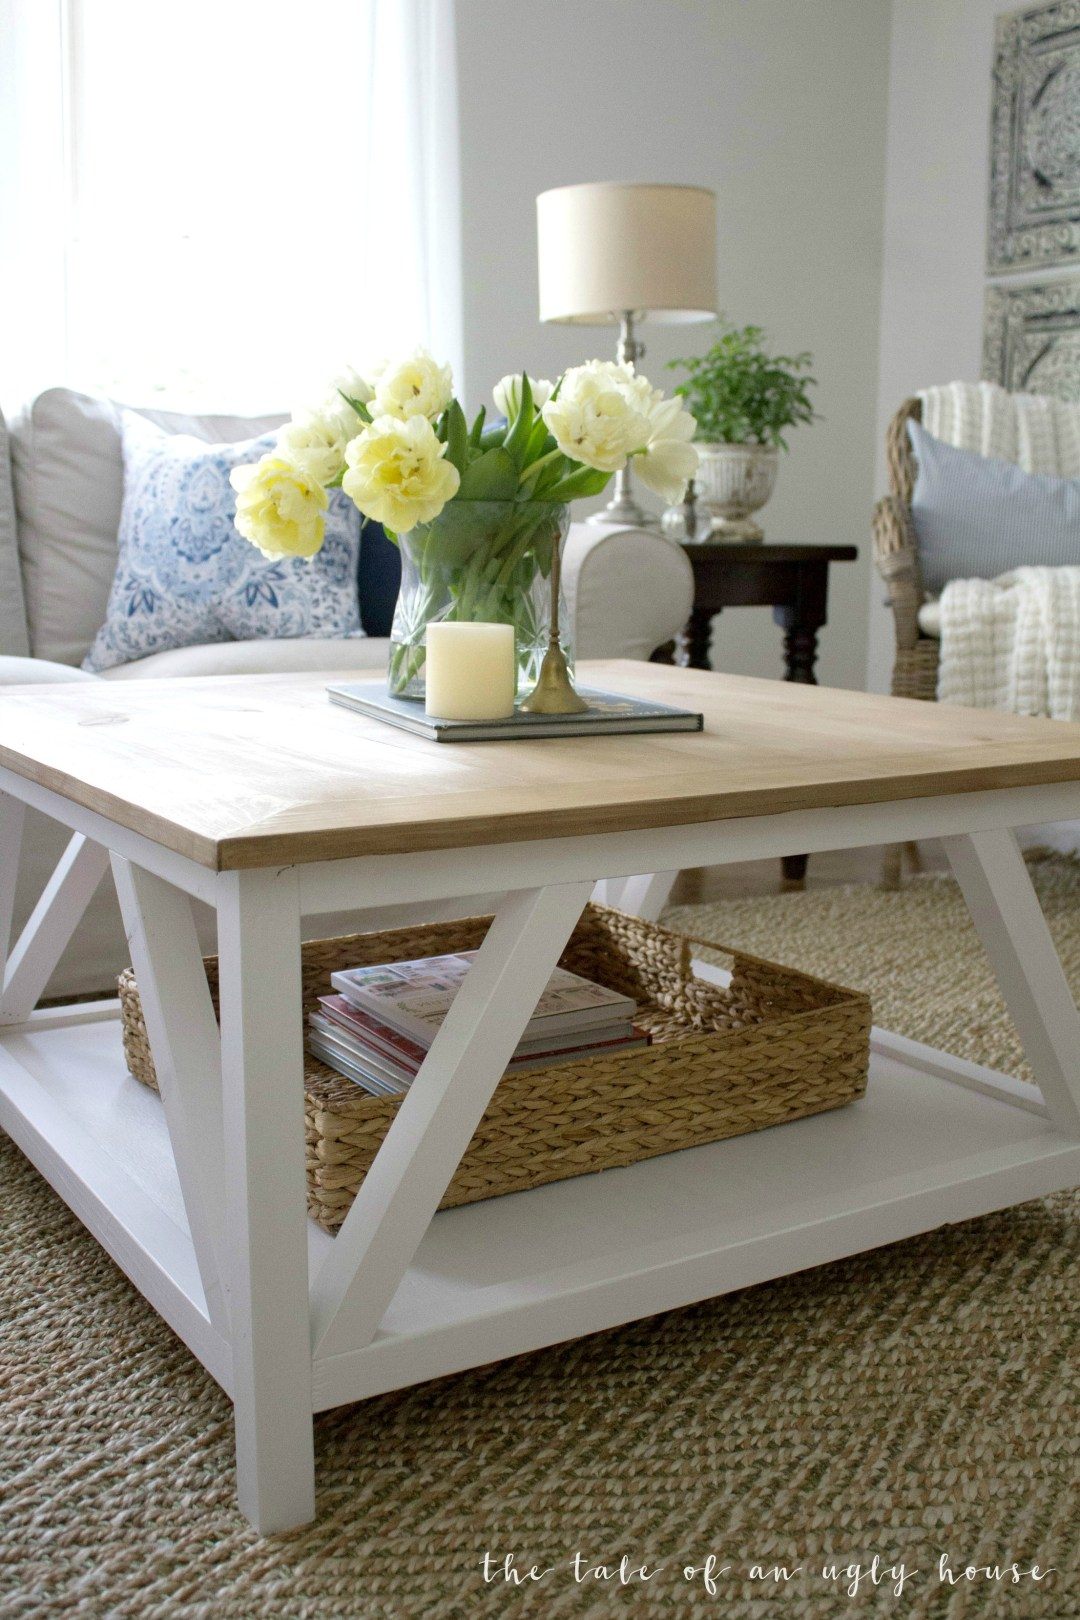 Square Coffee Table Plans Diy Modern Farmhouse Coffee Table Sincerely Marie Designs